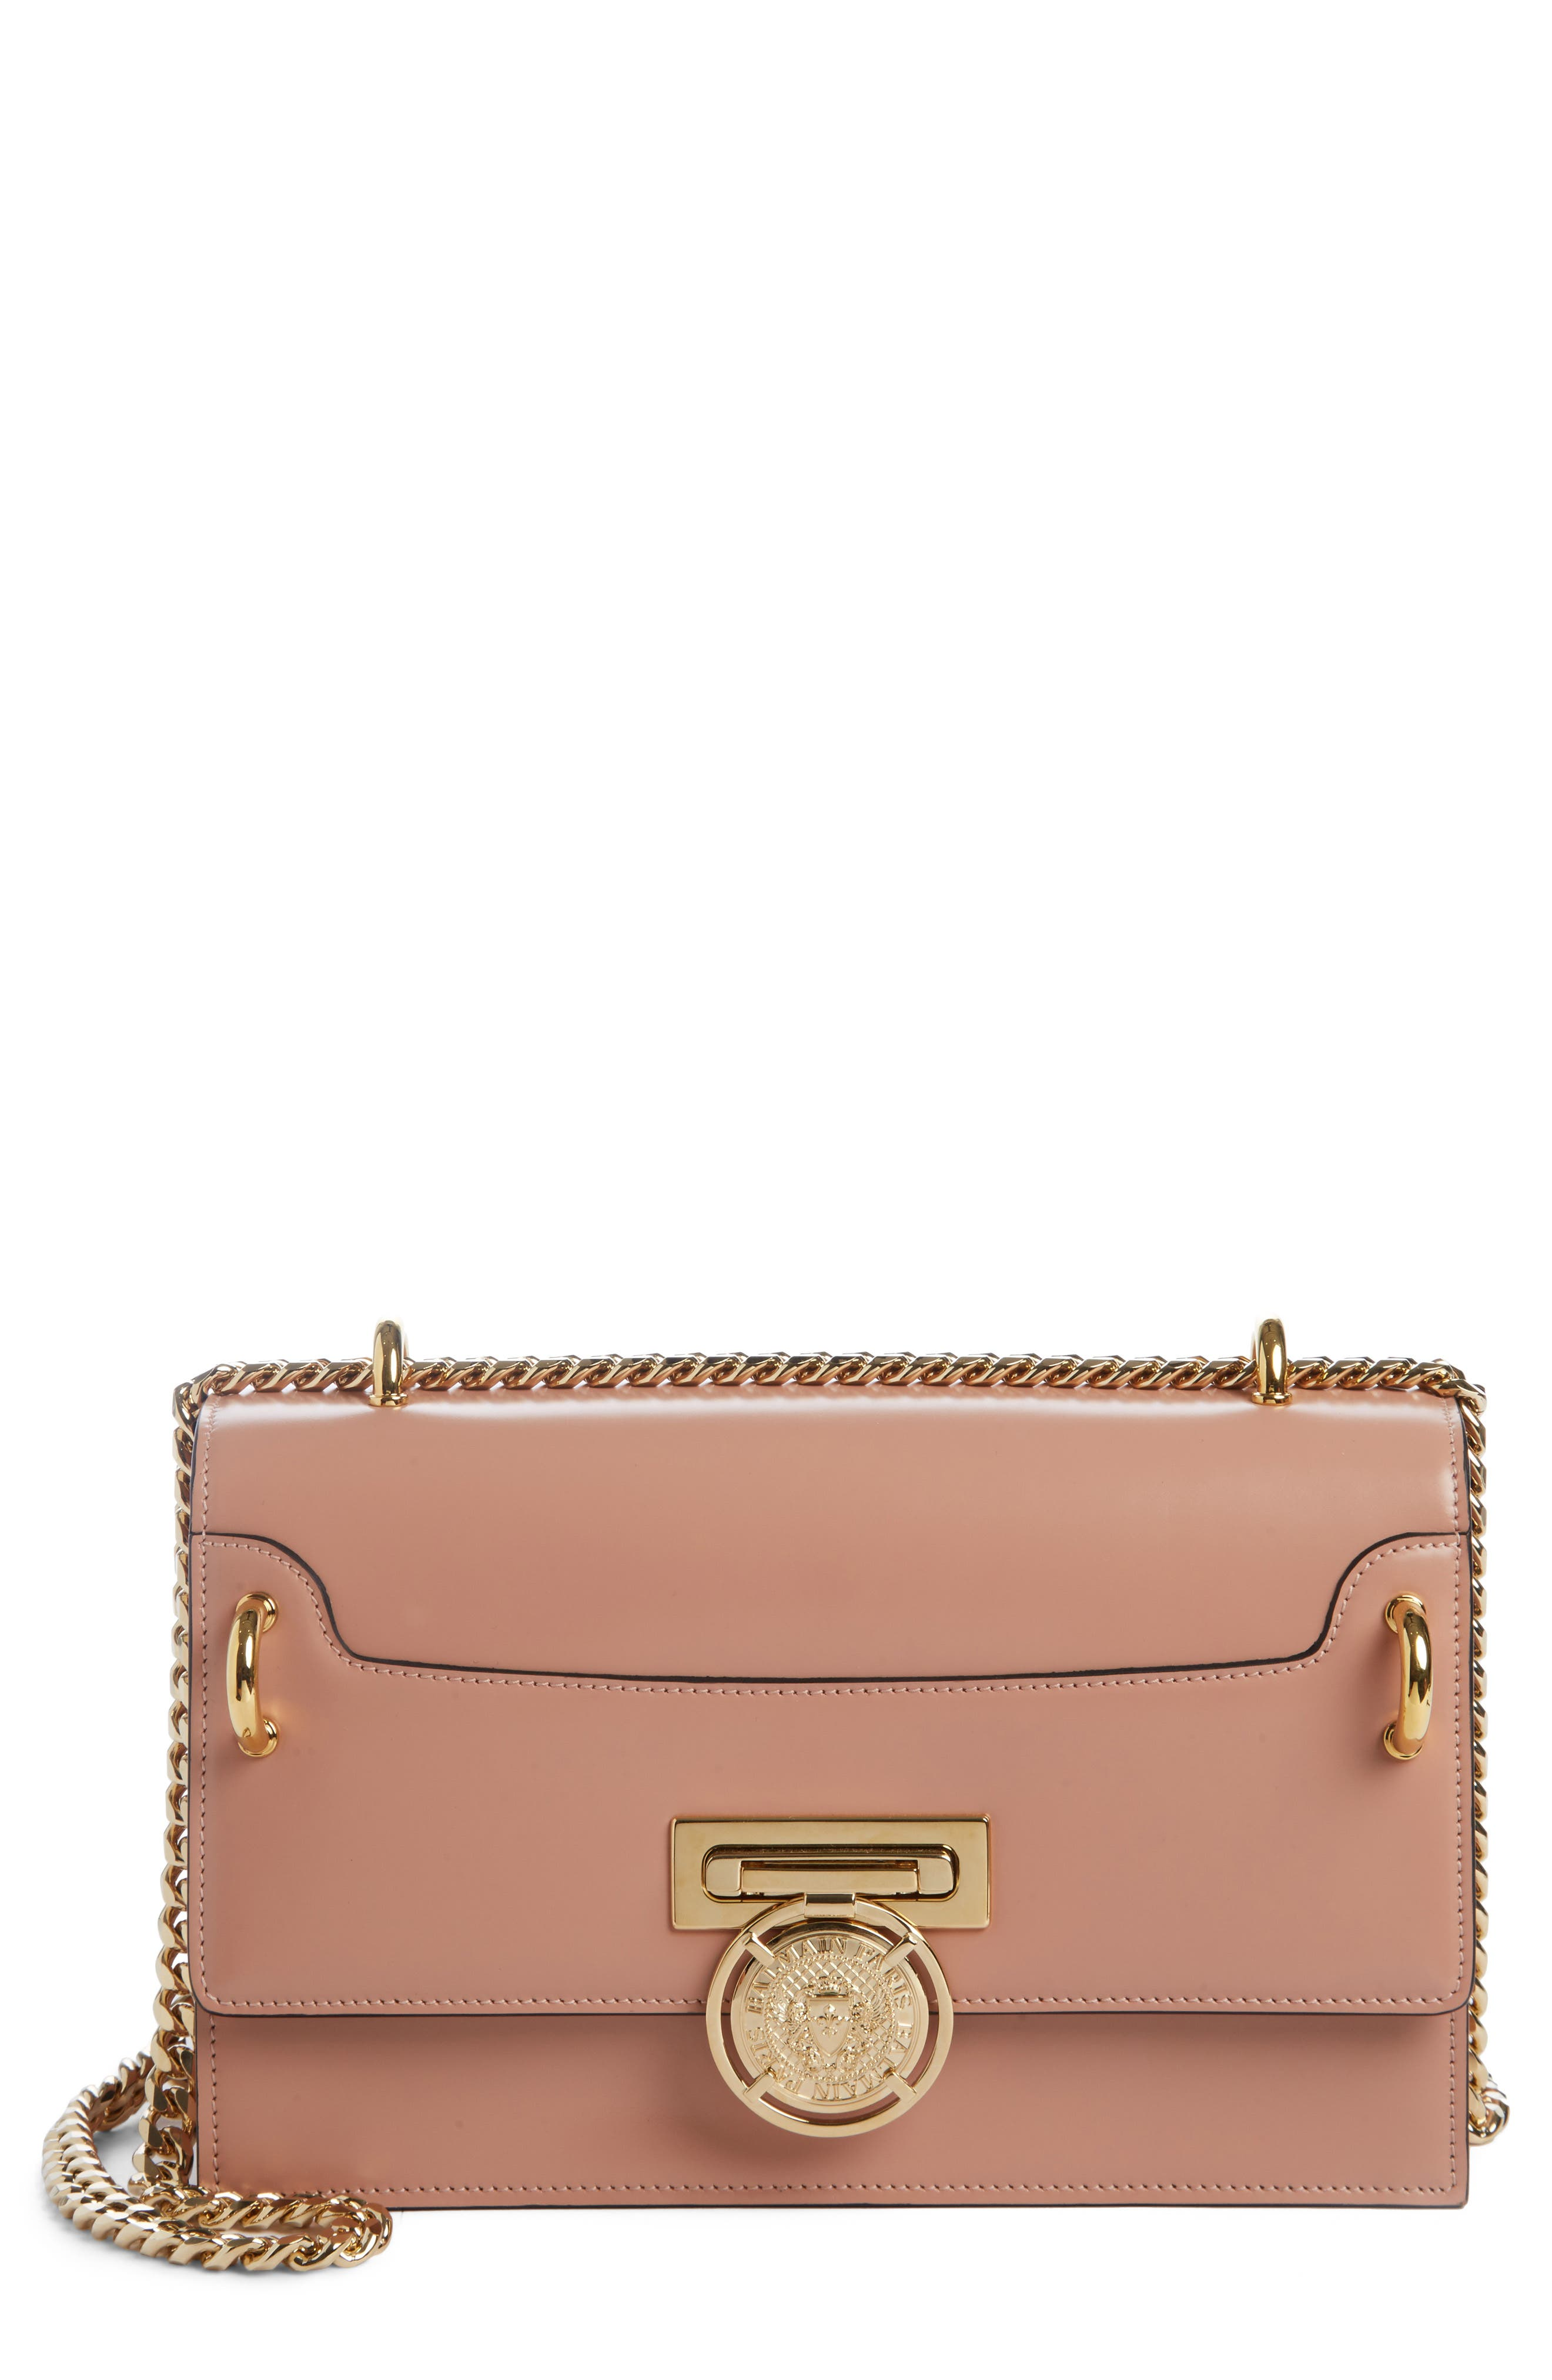 Glace Leather Box Shoulder Bag,                         Main,                         color, POUDRE